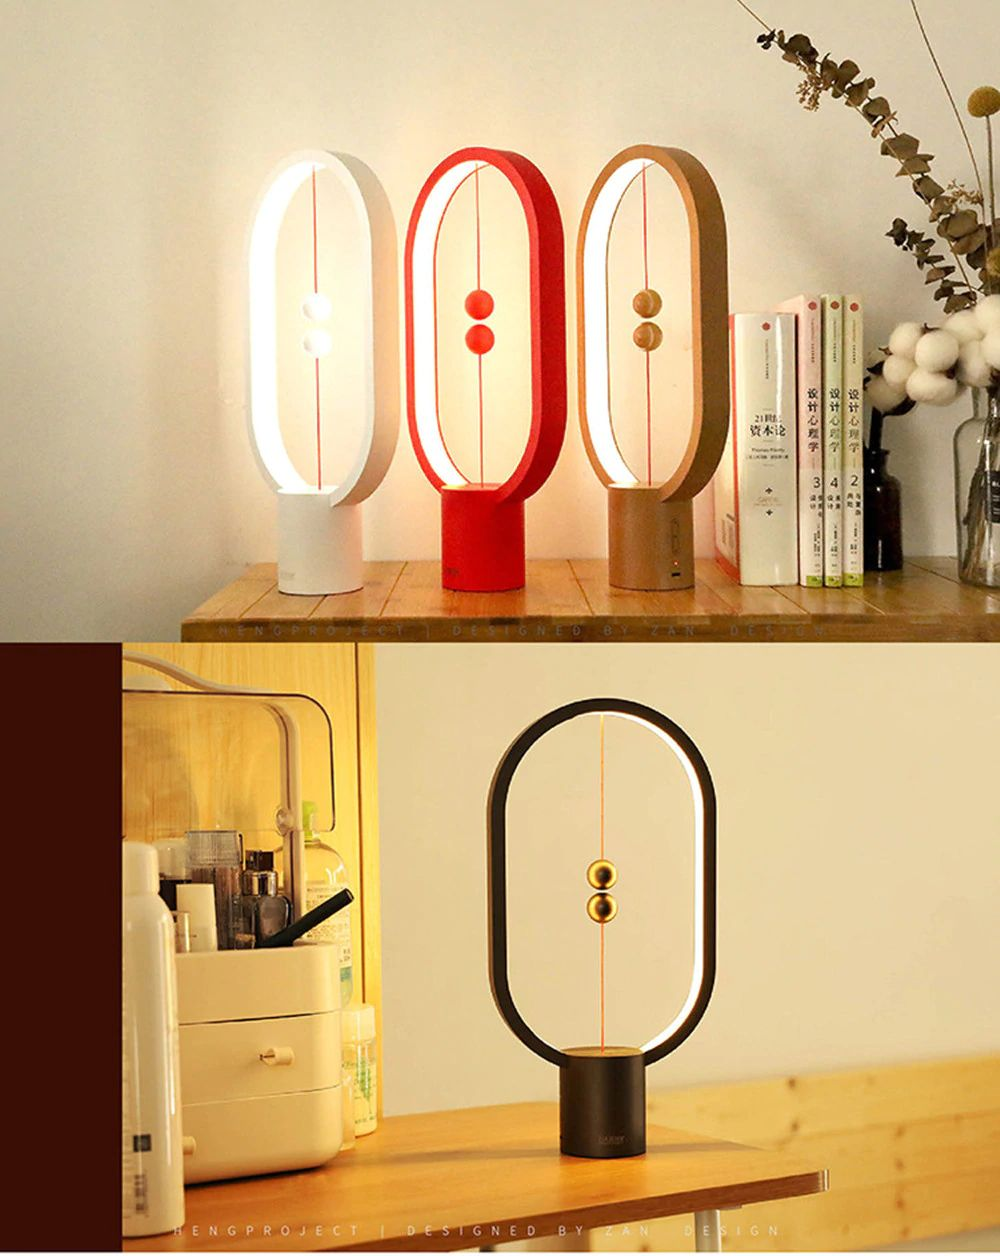 [Best Seller] LED Hoop Balance Lamp